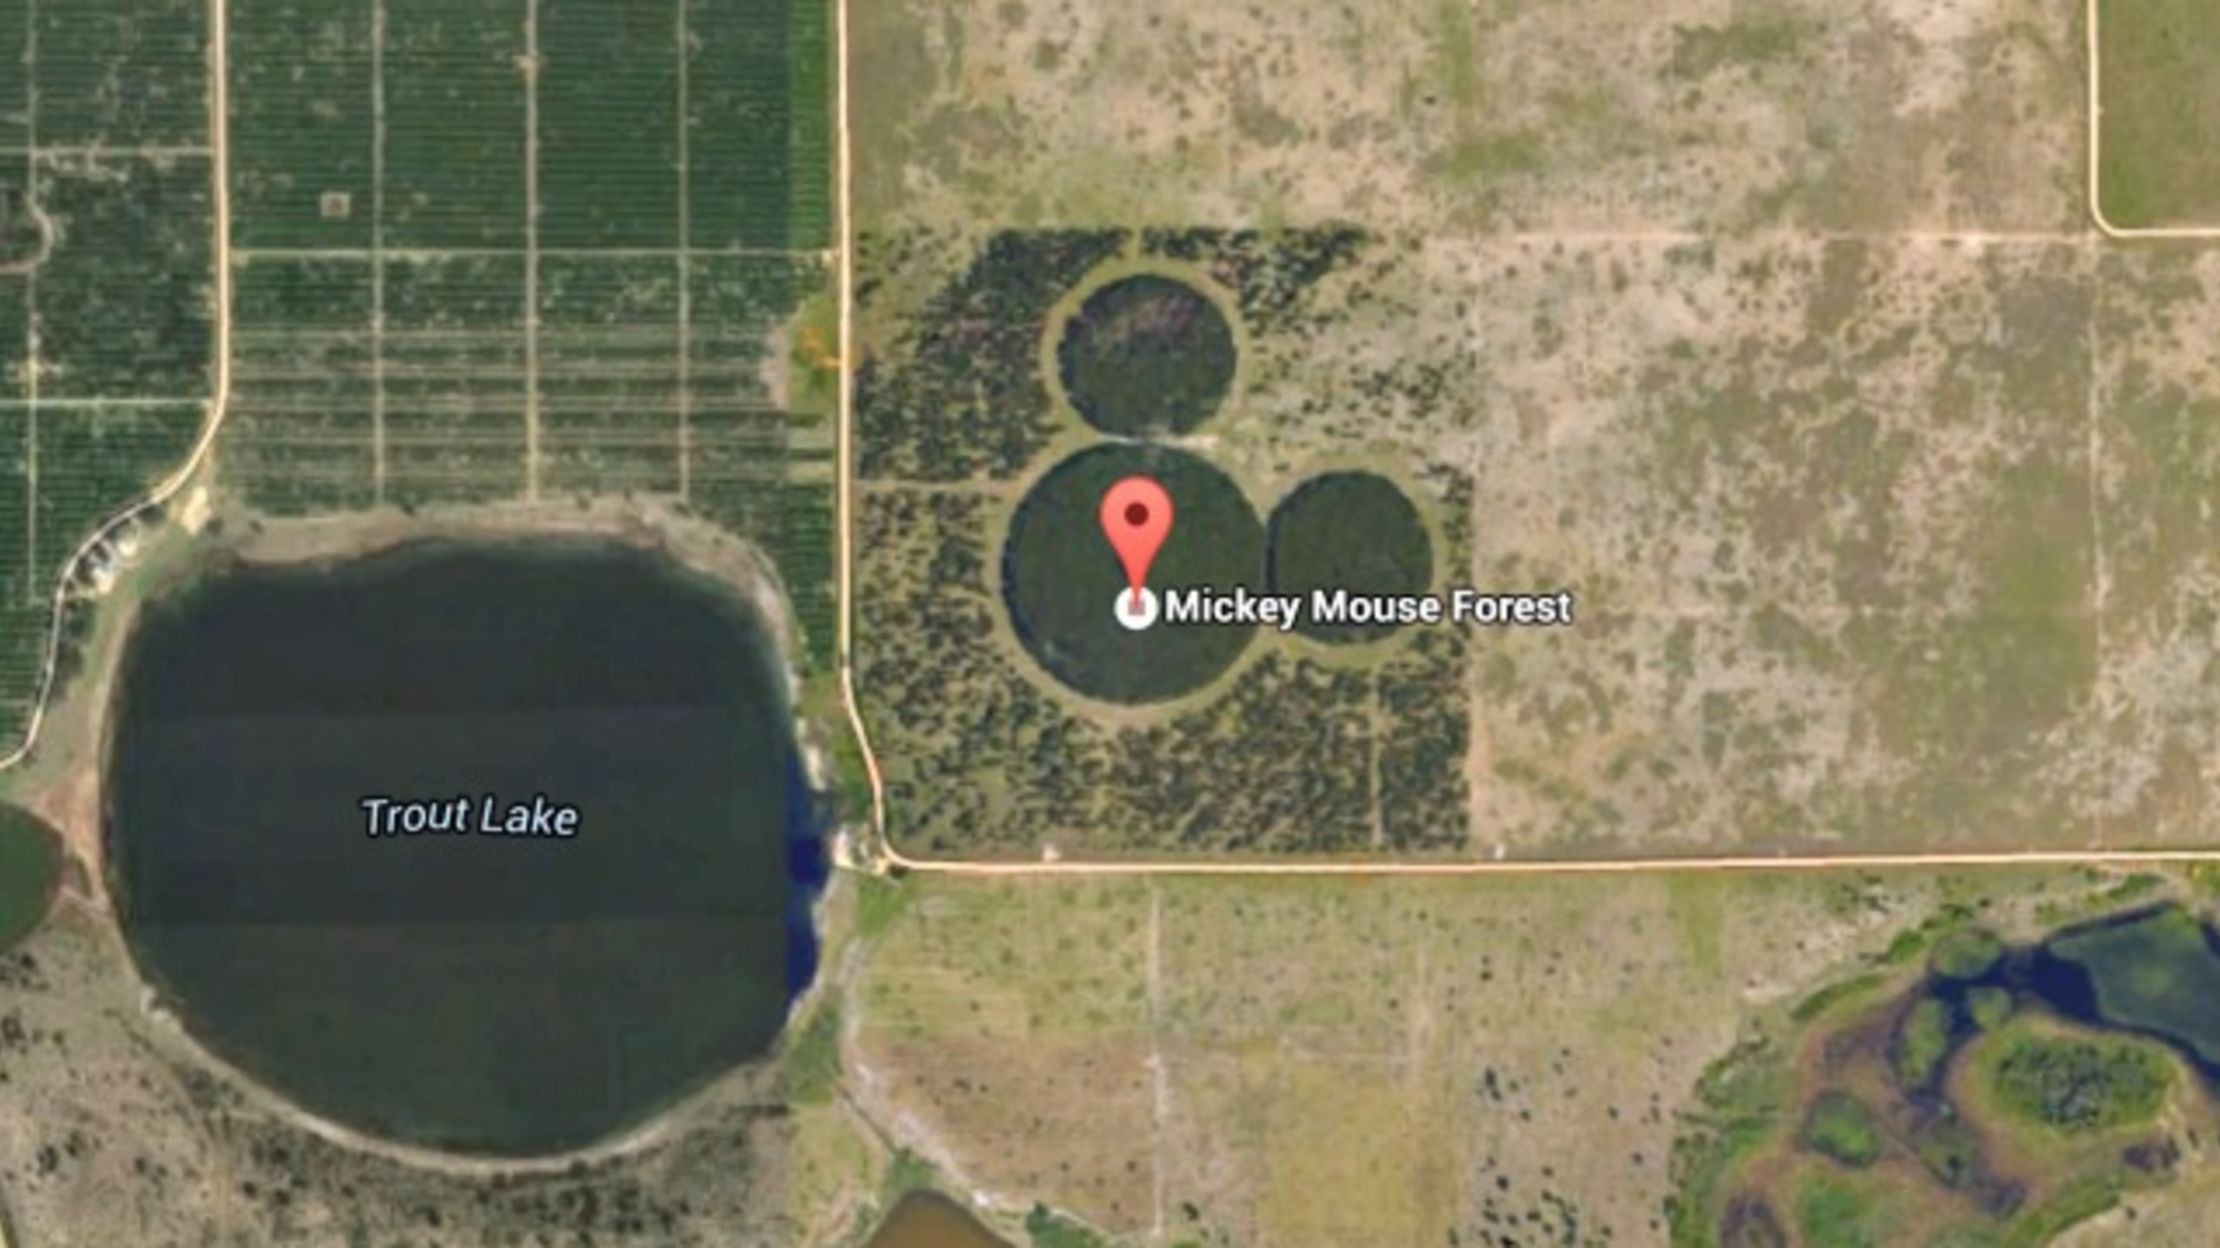 micky-mouse-google-earth